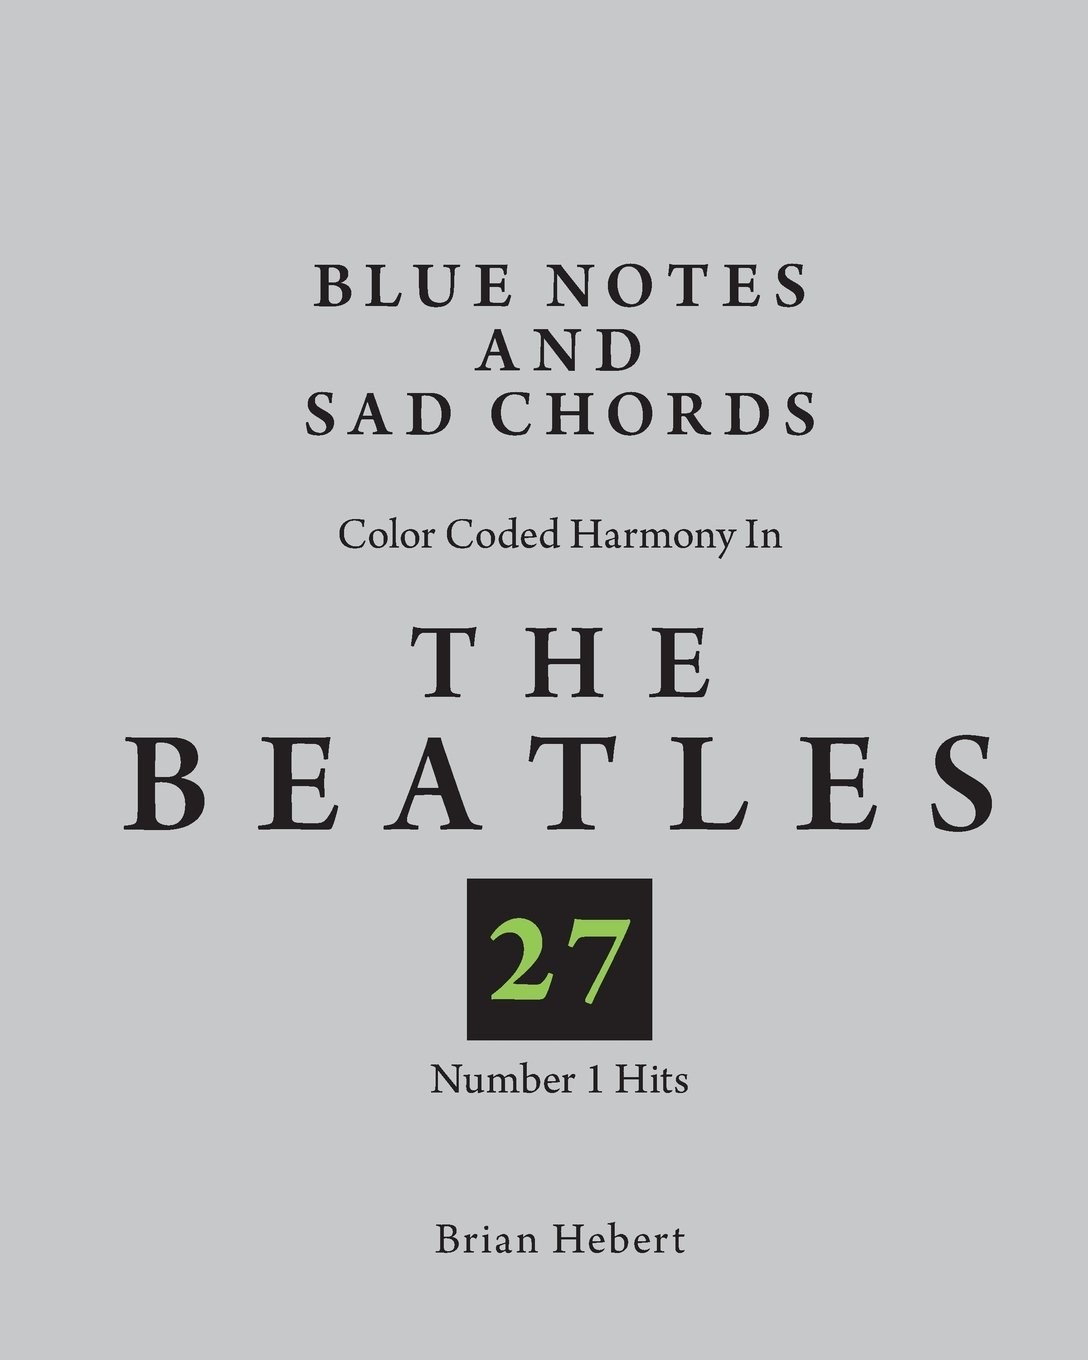 Blue Notes And Sad Chords Color Coded Harmony In The Beatles 27